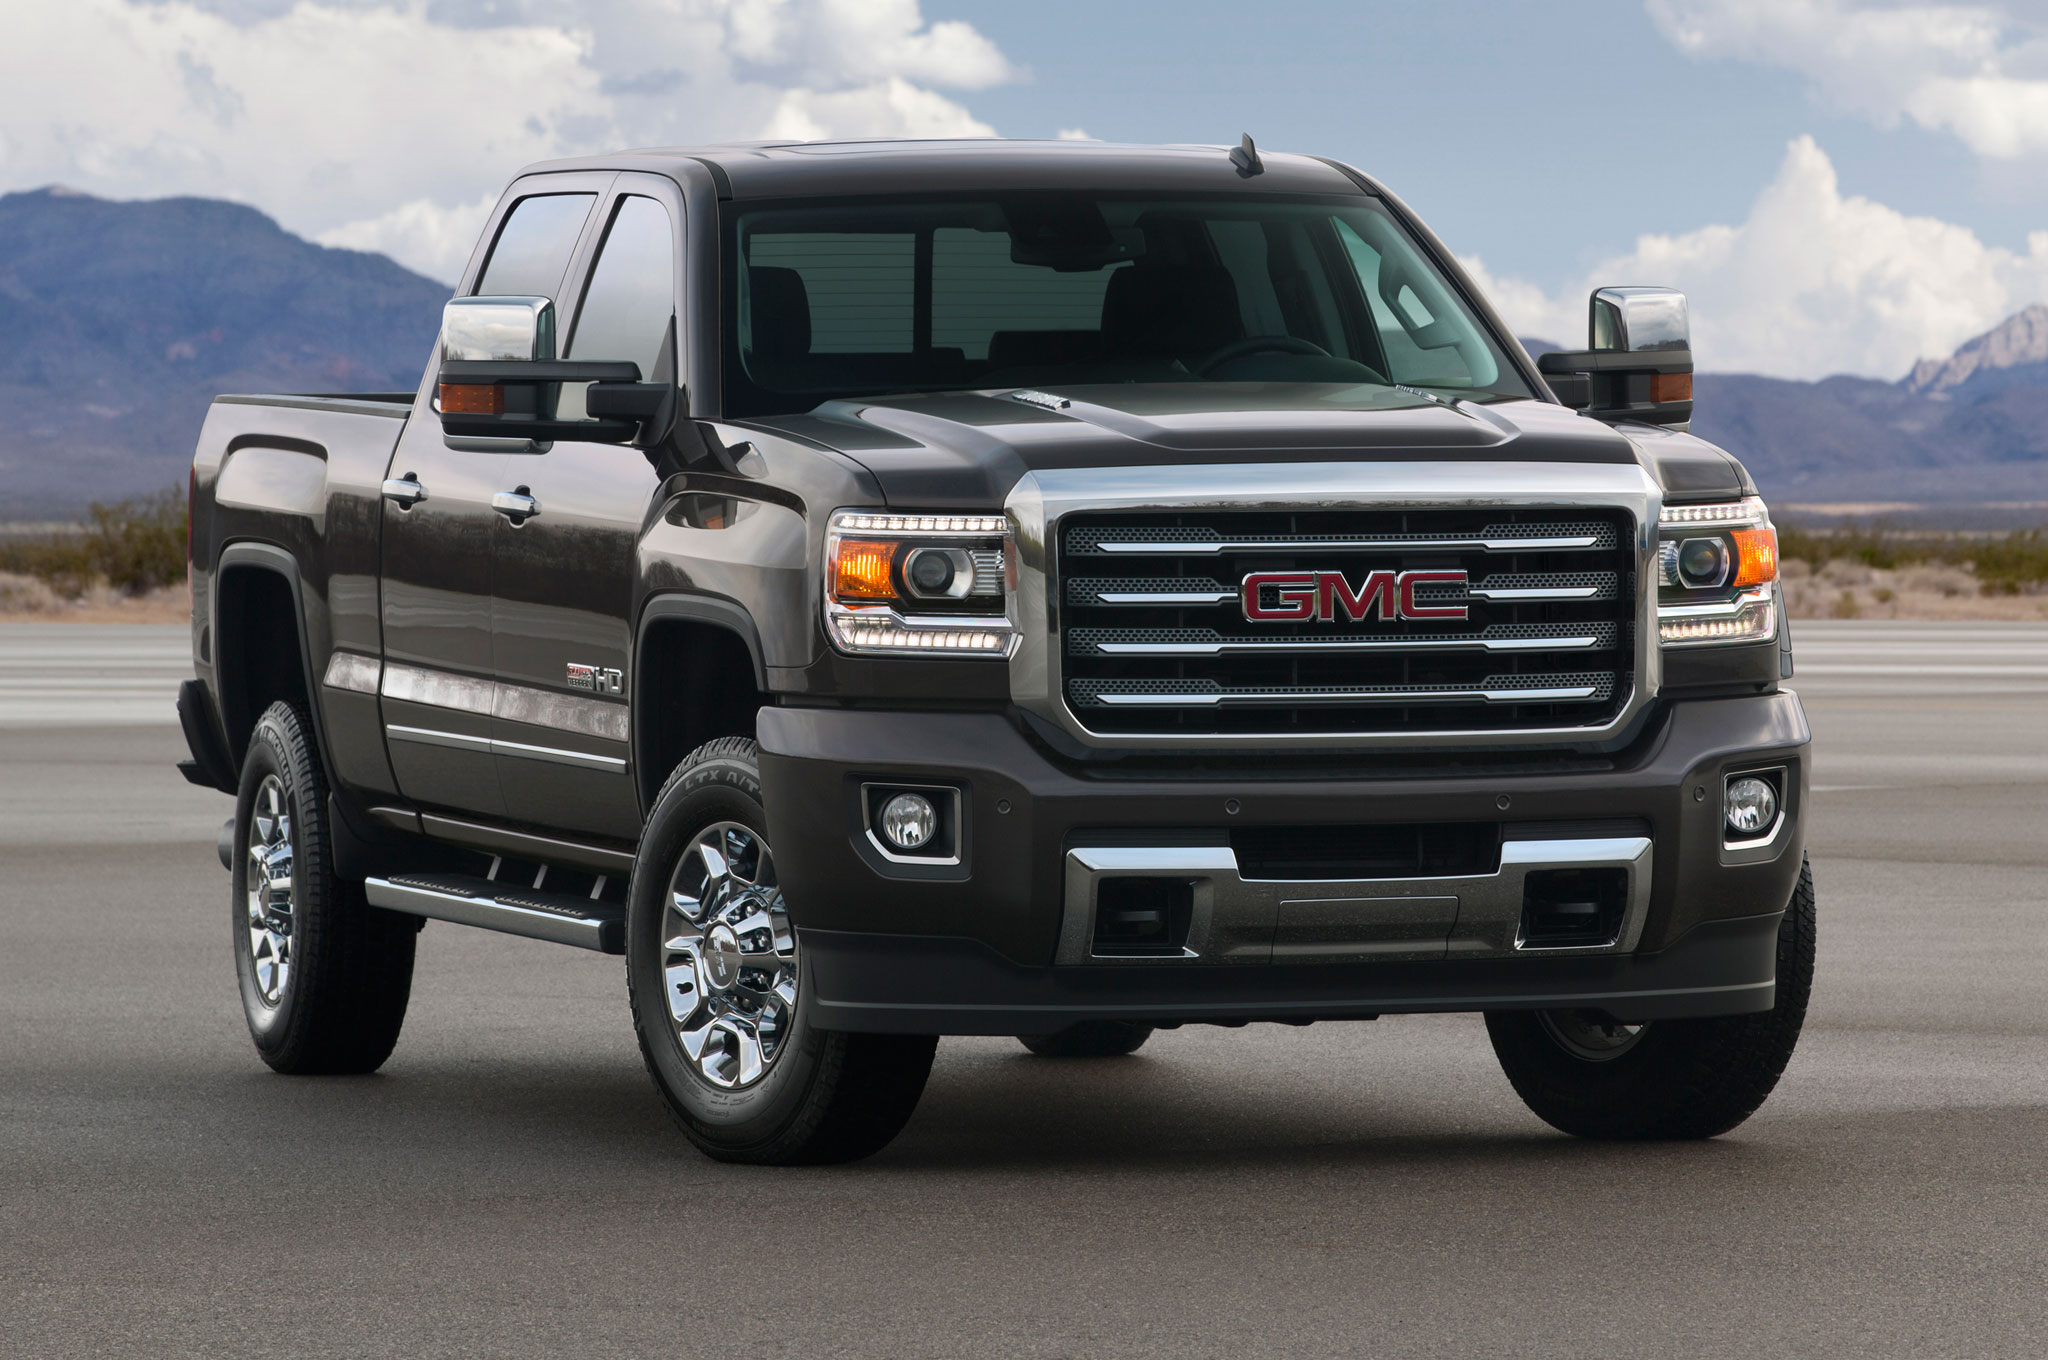 new place diesel information gmc sierra concept chevrolet hd truck chevy vehicle forums all forum and terrain